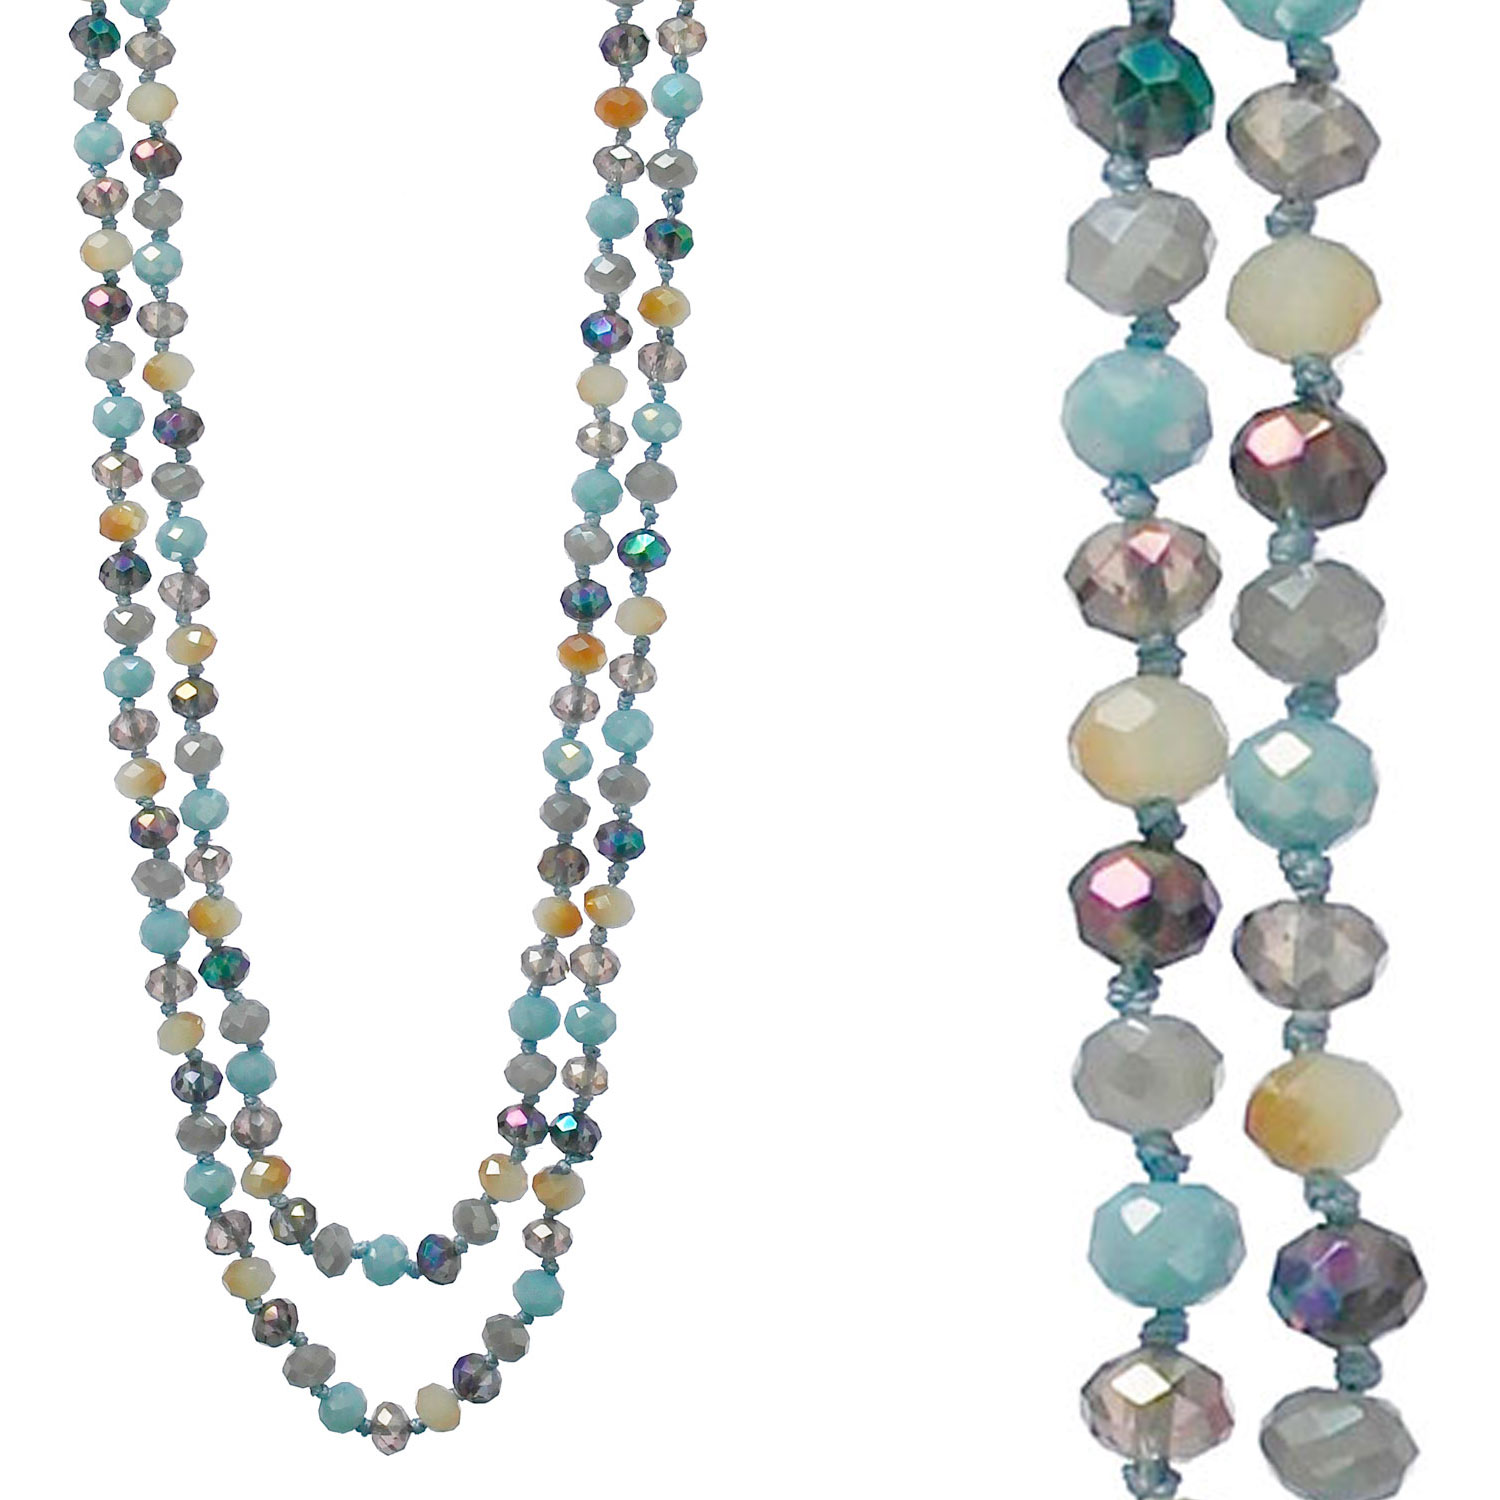 Necklaces &lt; 8mm-60&quot;L Beads Necklaces < Wholesale Necklace